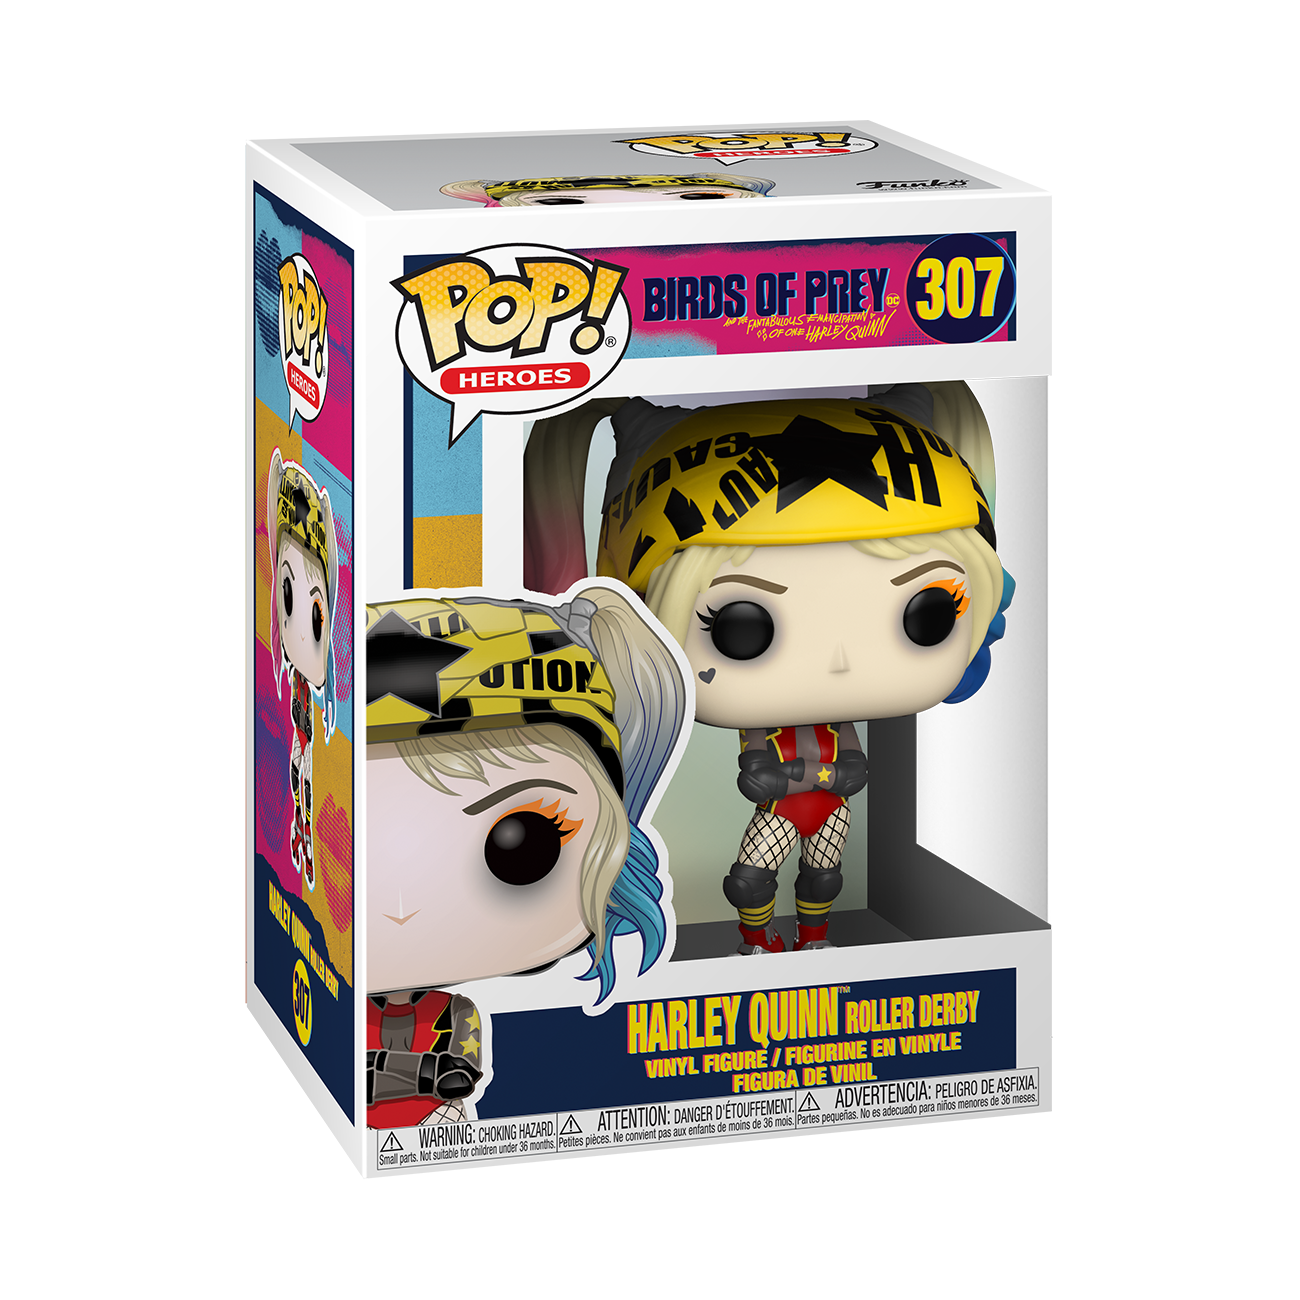 Birds of Prey - Harley (Roller Derby) Pop! Vinyl Figure image